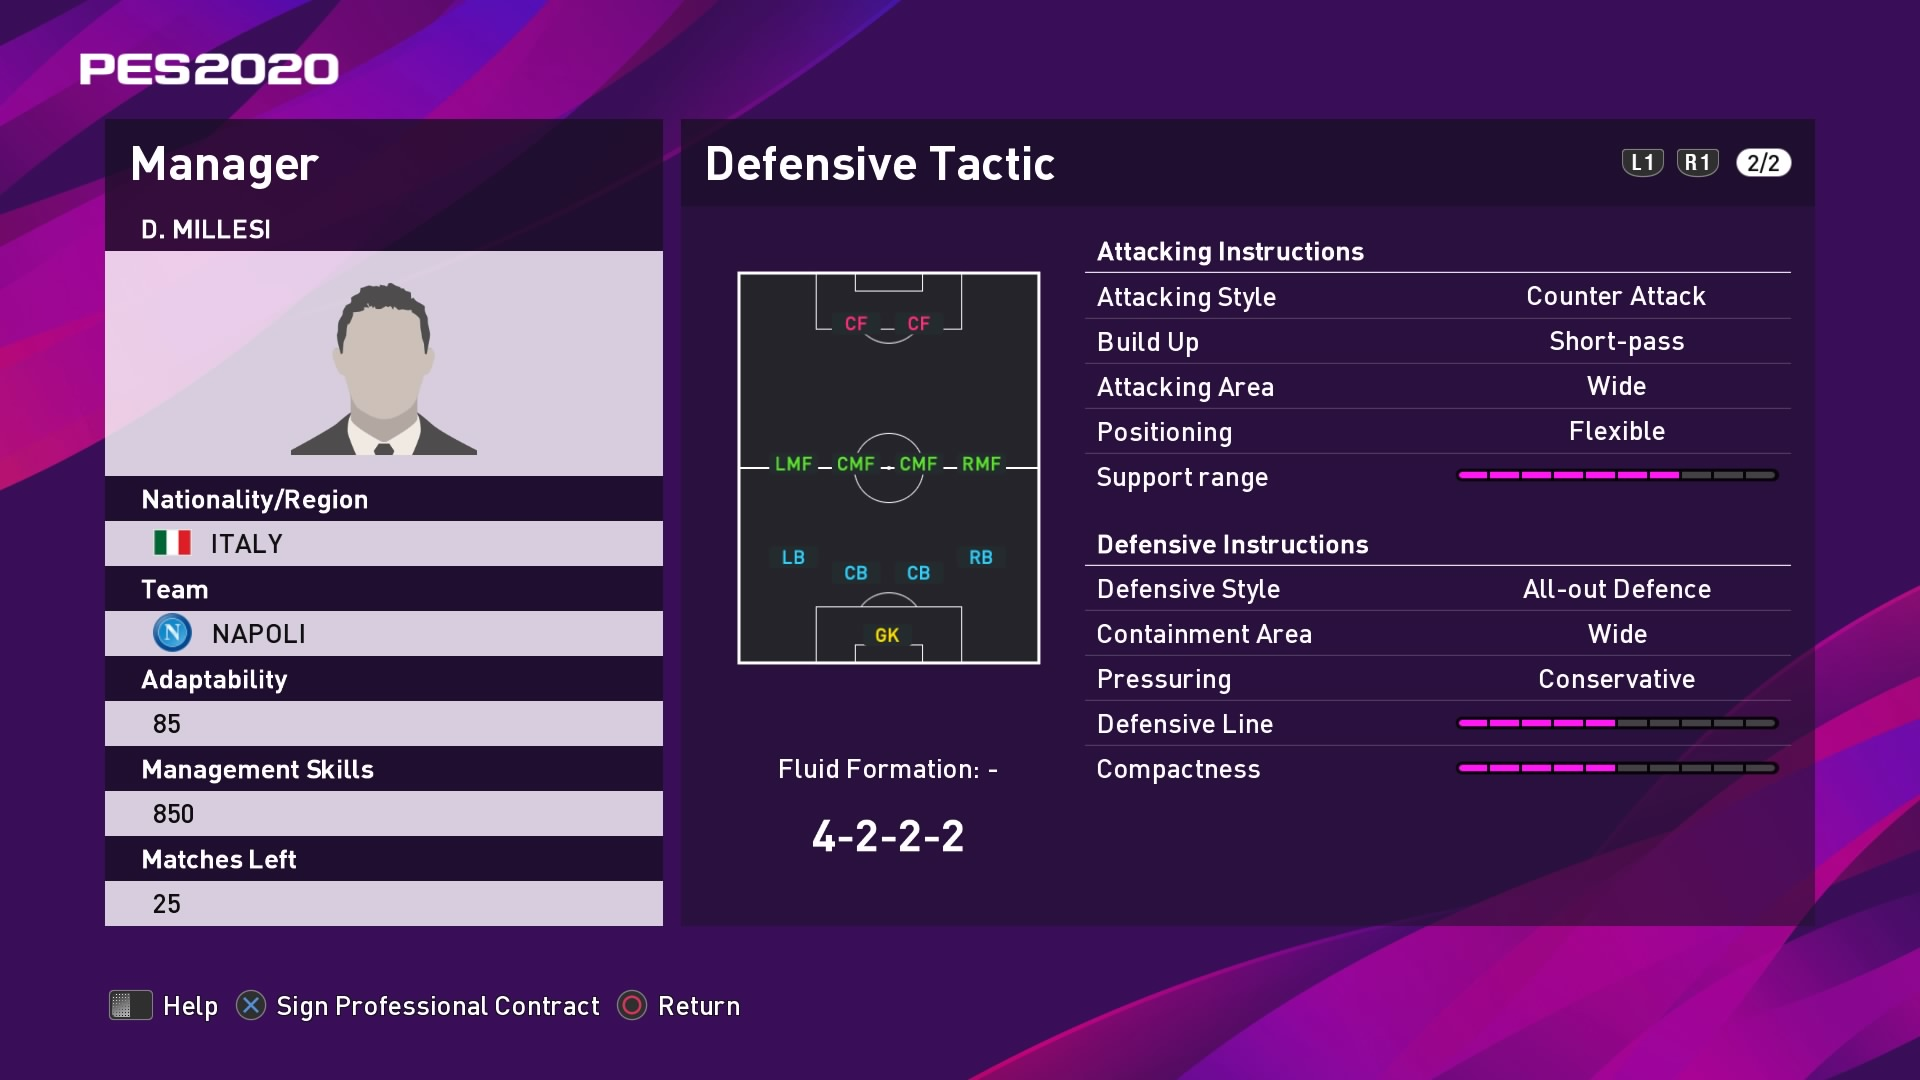 D. Millesi (Carlo Ancelotti) Defensive Tactic in PES 2020 myClub